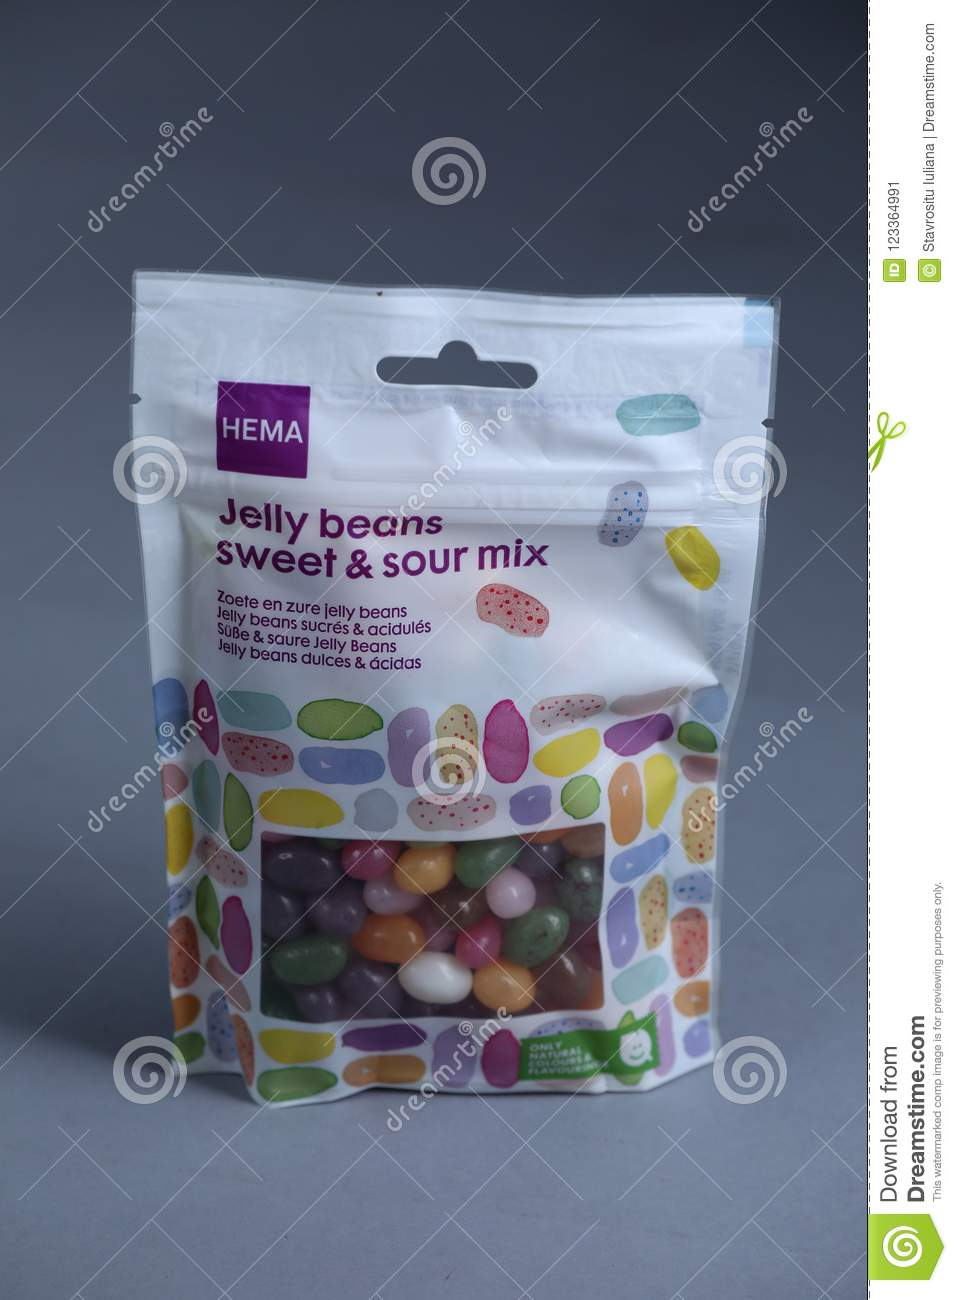 Jelly Beans From Hema, Dutch Store, Isolated Editorial Photo